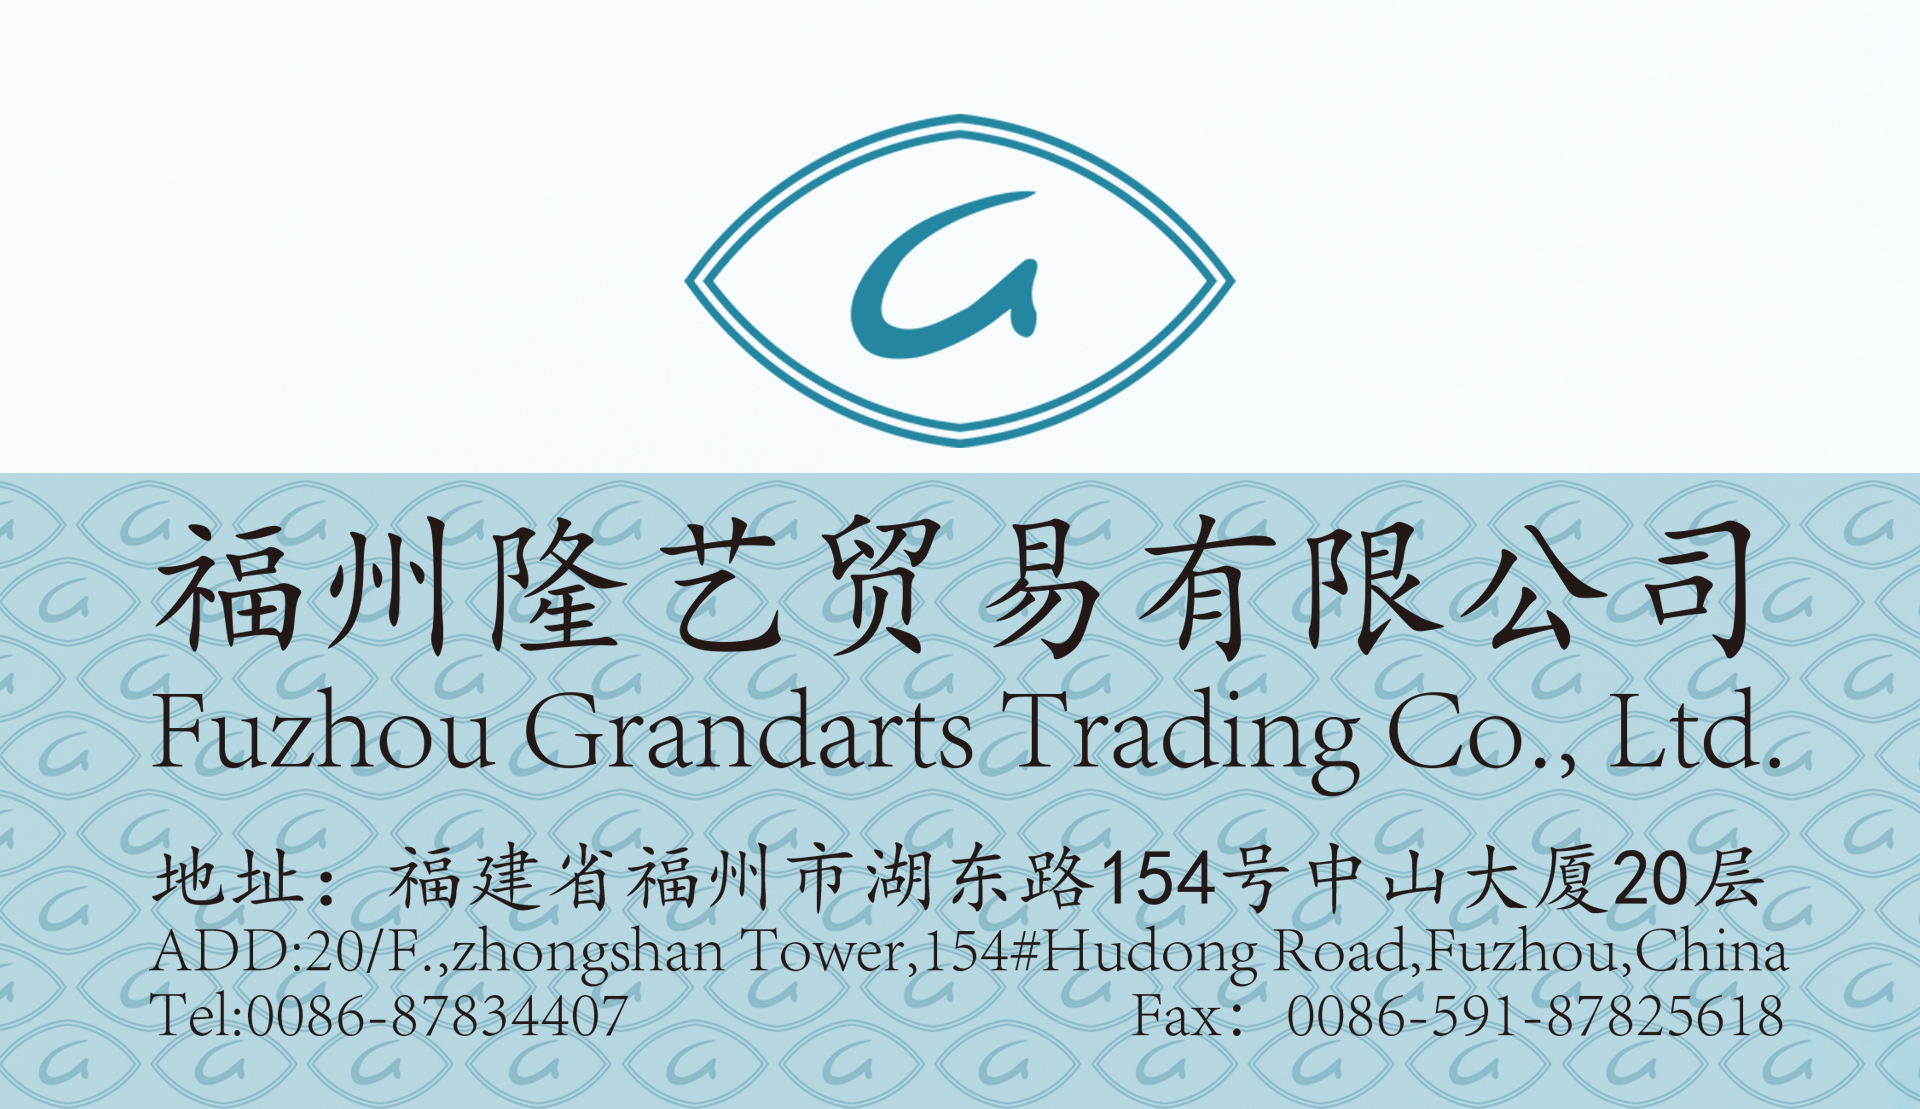 FUZHOU GRANDARTS TRADING CO., LTD.